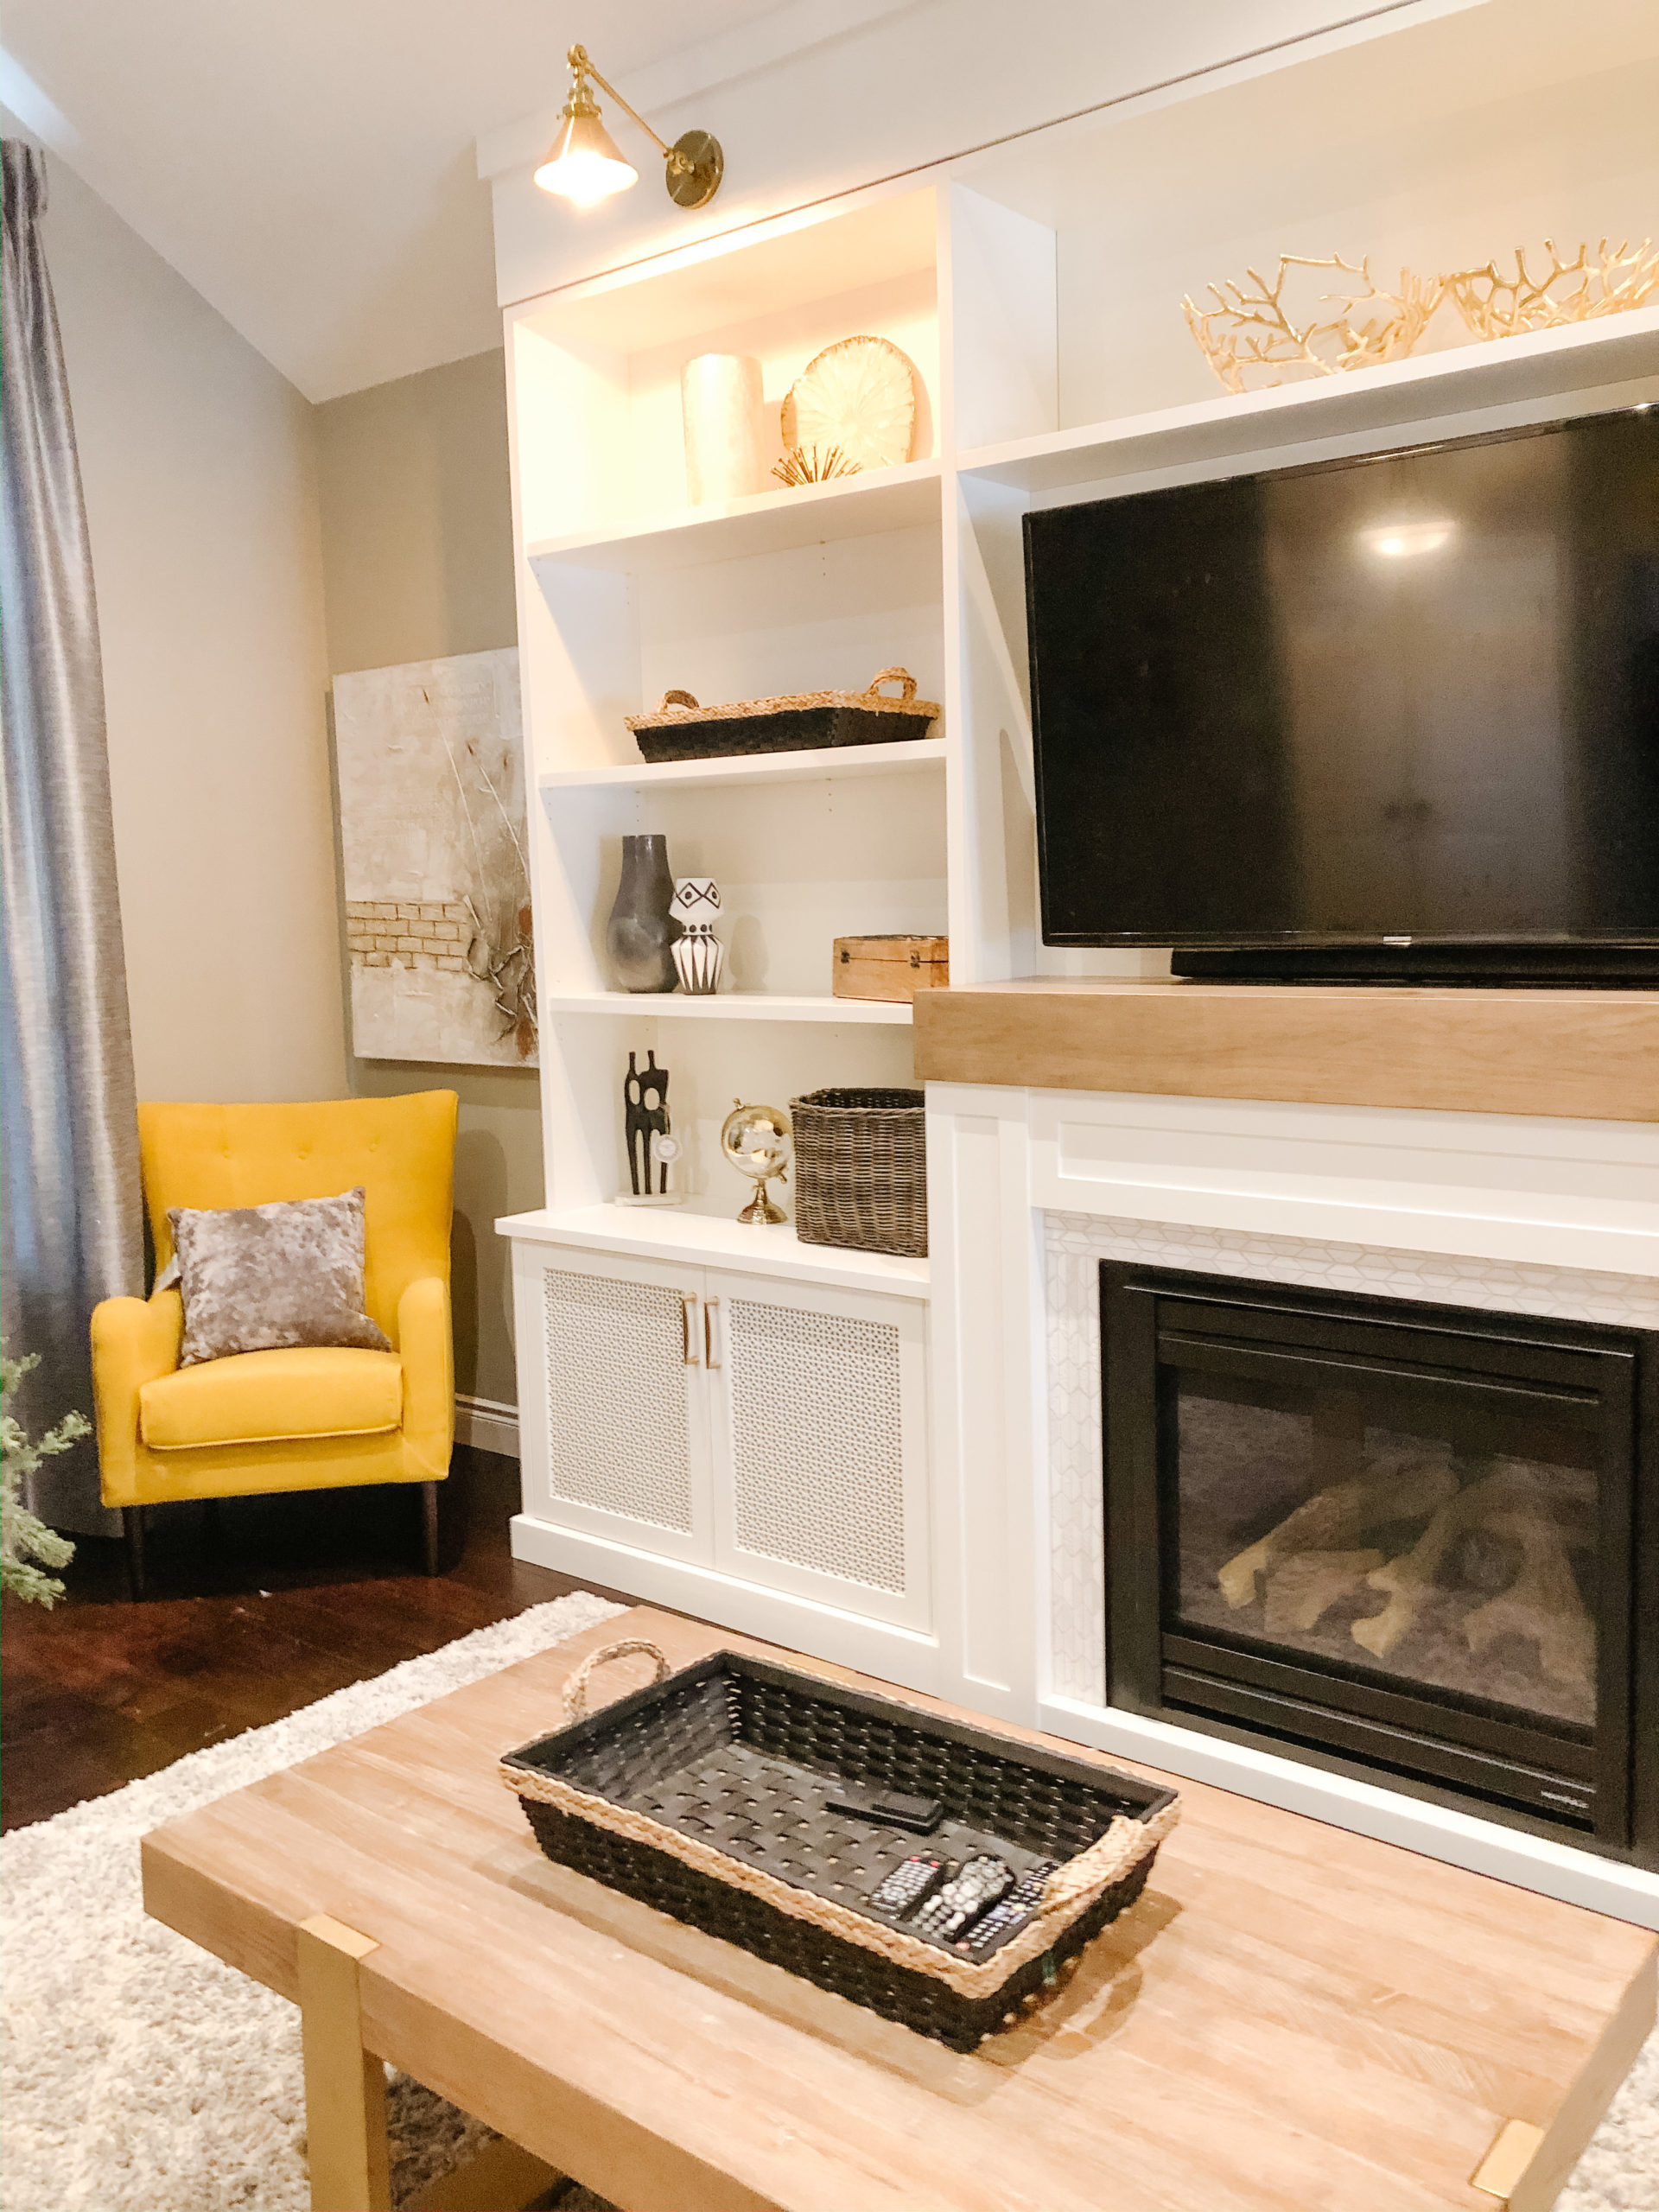 alternative view of living space with built in gas fireplace with additional seating